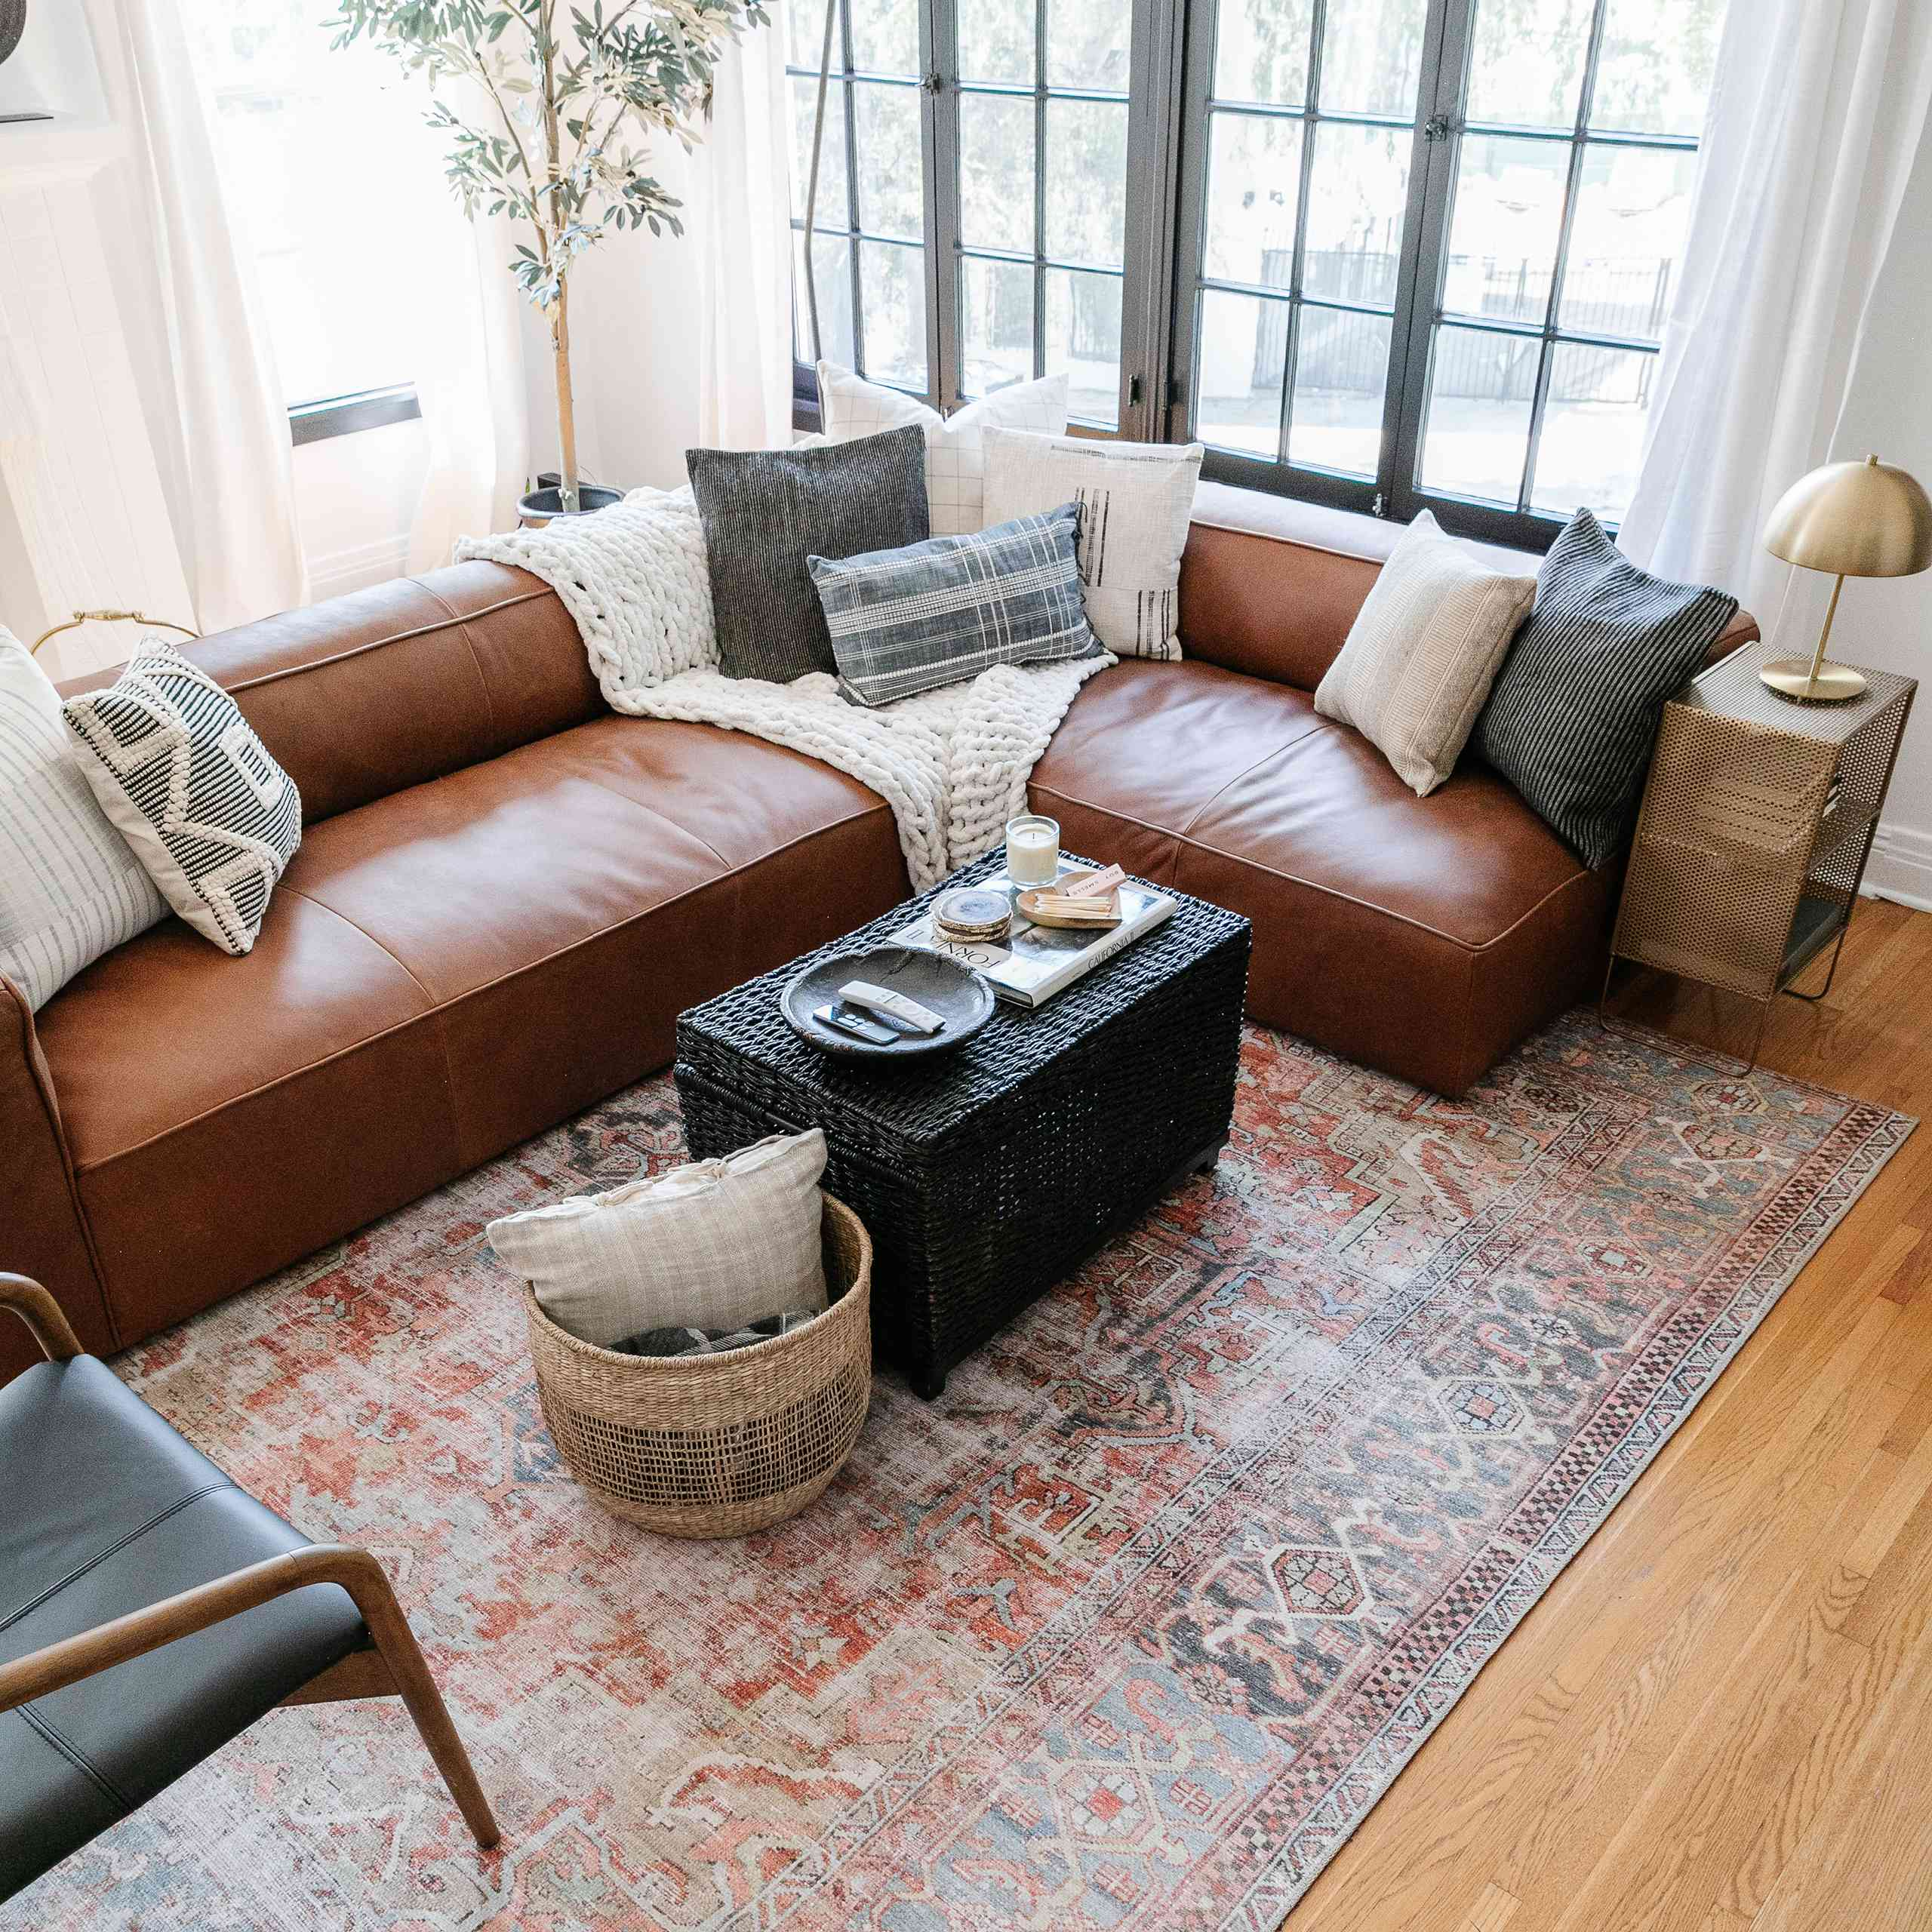 timeless furniture in the home of drew scott, the lone fox